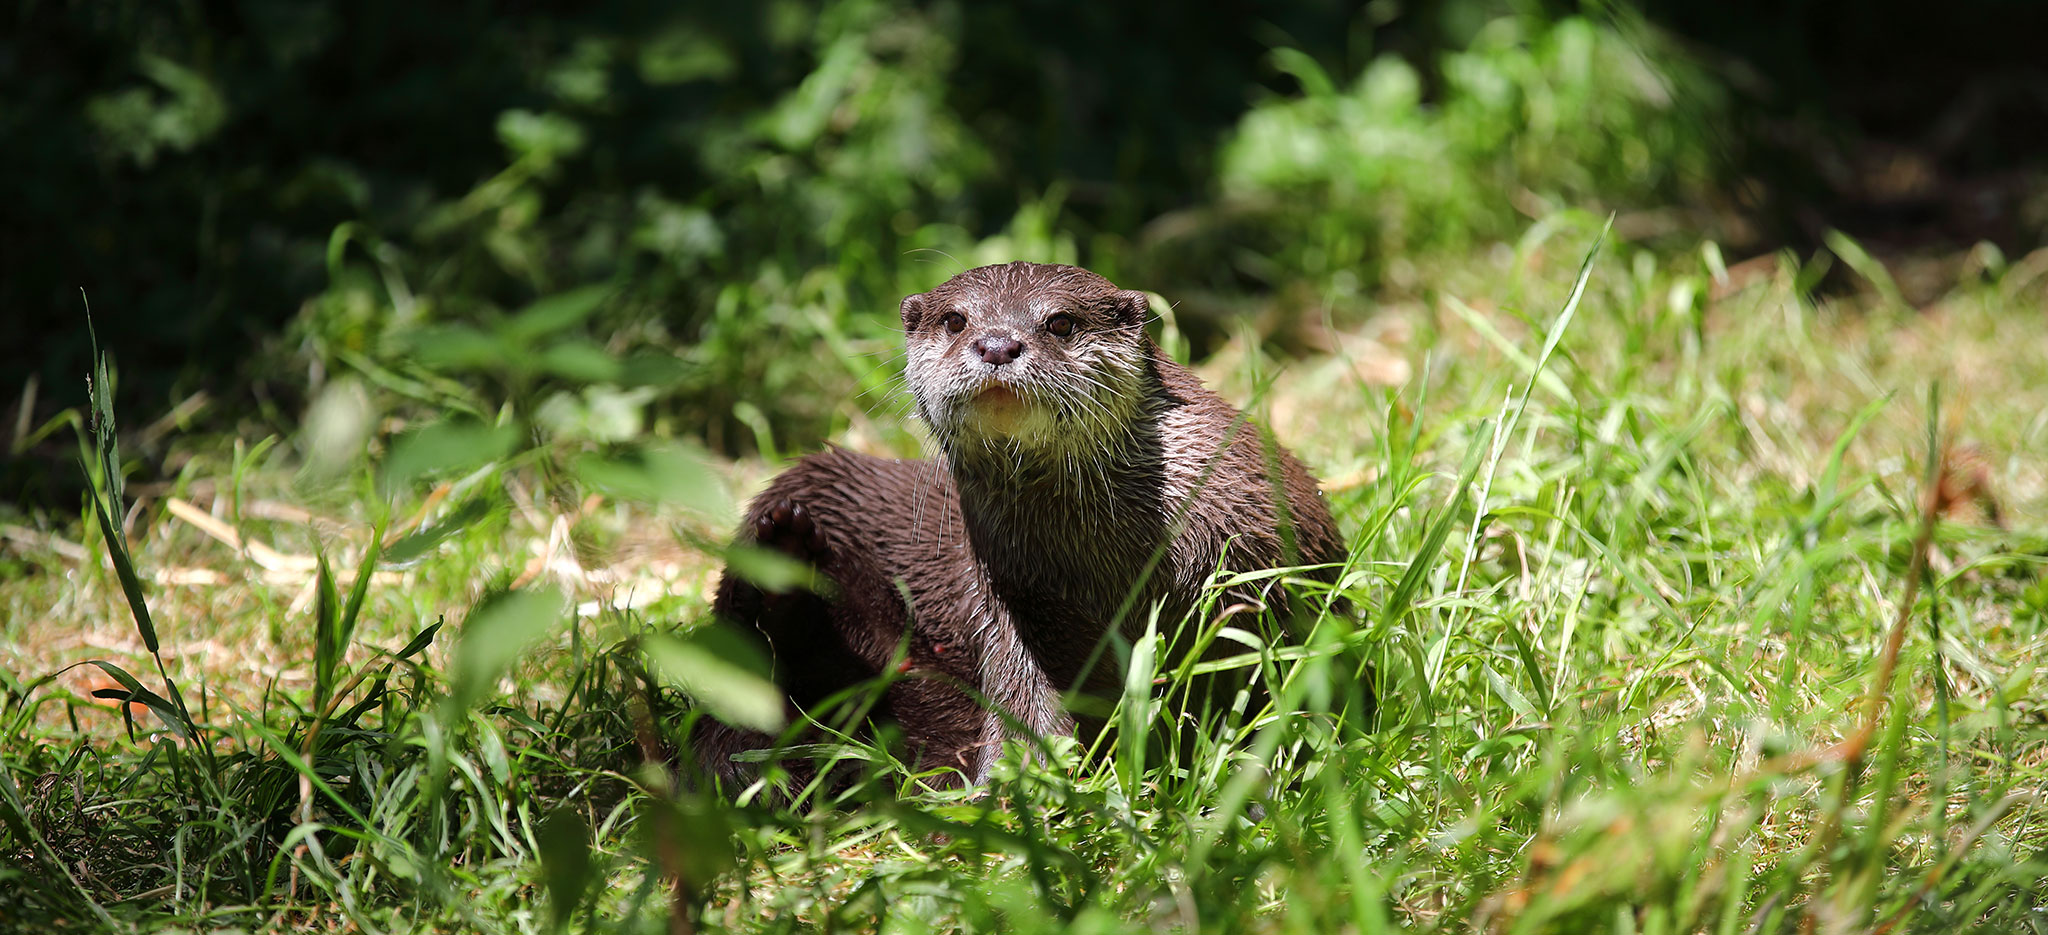 Otter in Wales